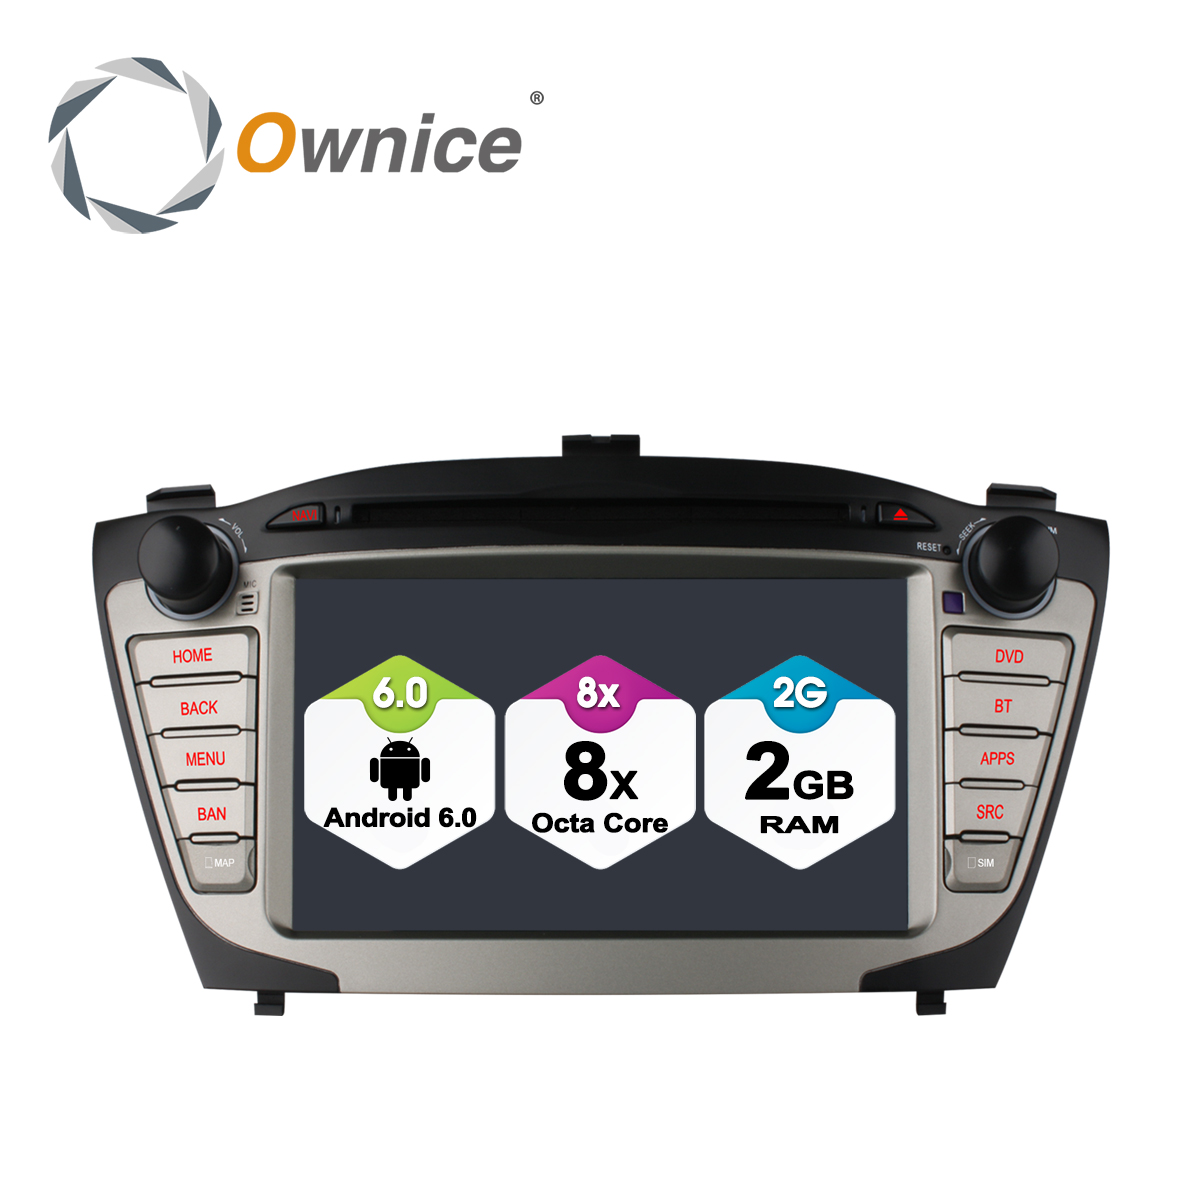 Ownice C500 Android 6 0 Octa 8 Core Car video For HYUNDAI IX35 Tucson car dvd aliexpress com buy ownice c500 android 6 0 octa 8 core car video  at readyjetset.co